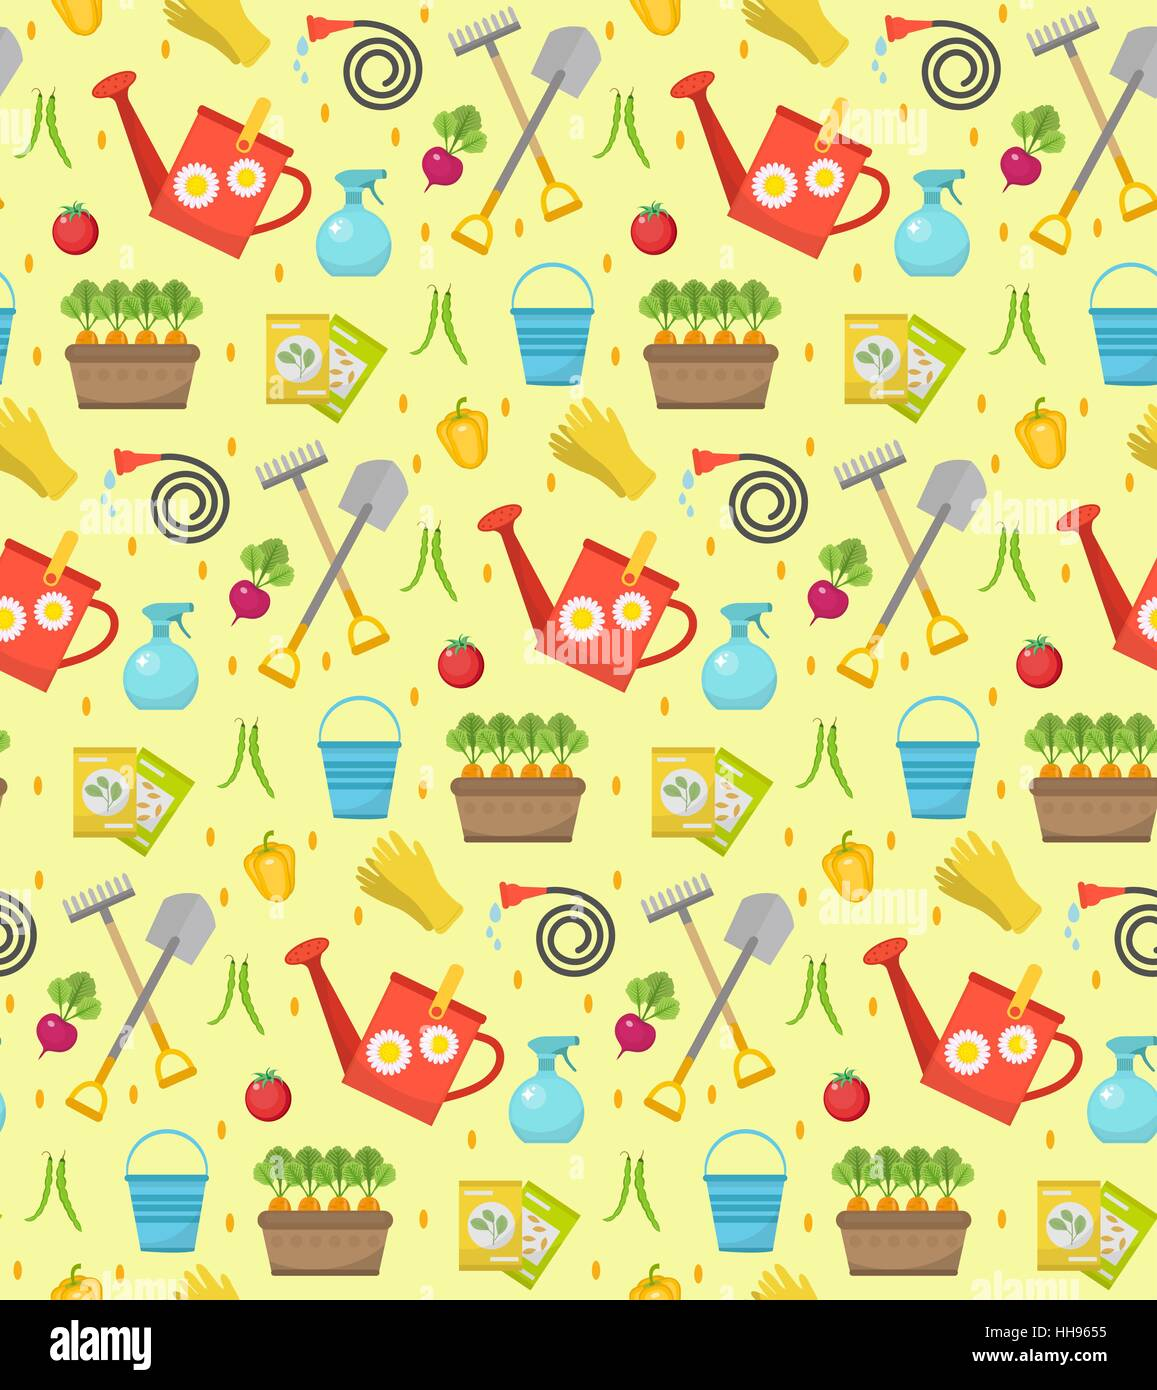 Gardening Seamless Pattern With Garden Tools. Spring Endless Backdrop.  Horticulture Texture, Wallpaper. Cute Summer Background. Vector Illustration